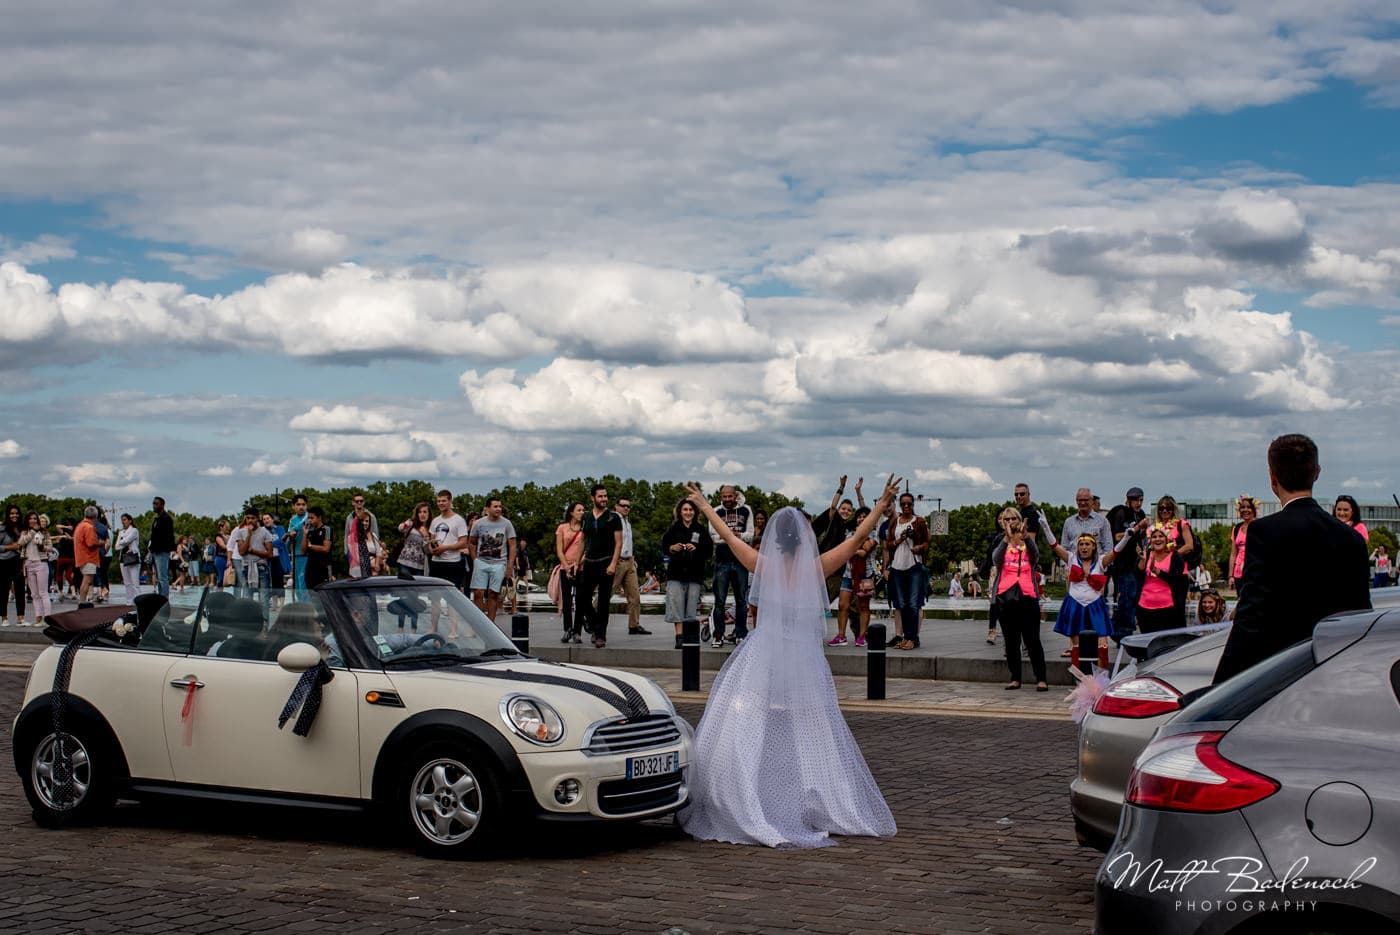 french bride celebrating in the middle of traffic | bordeaux street photography